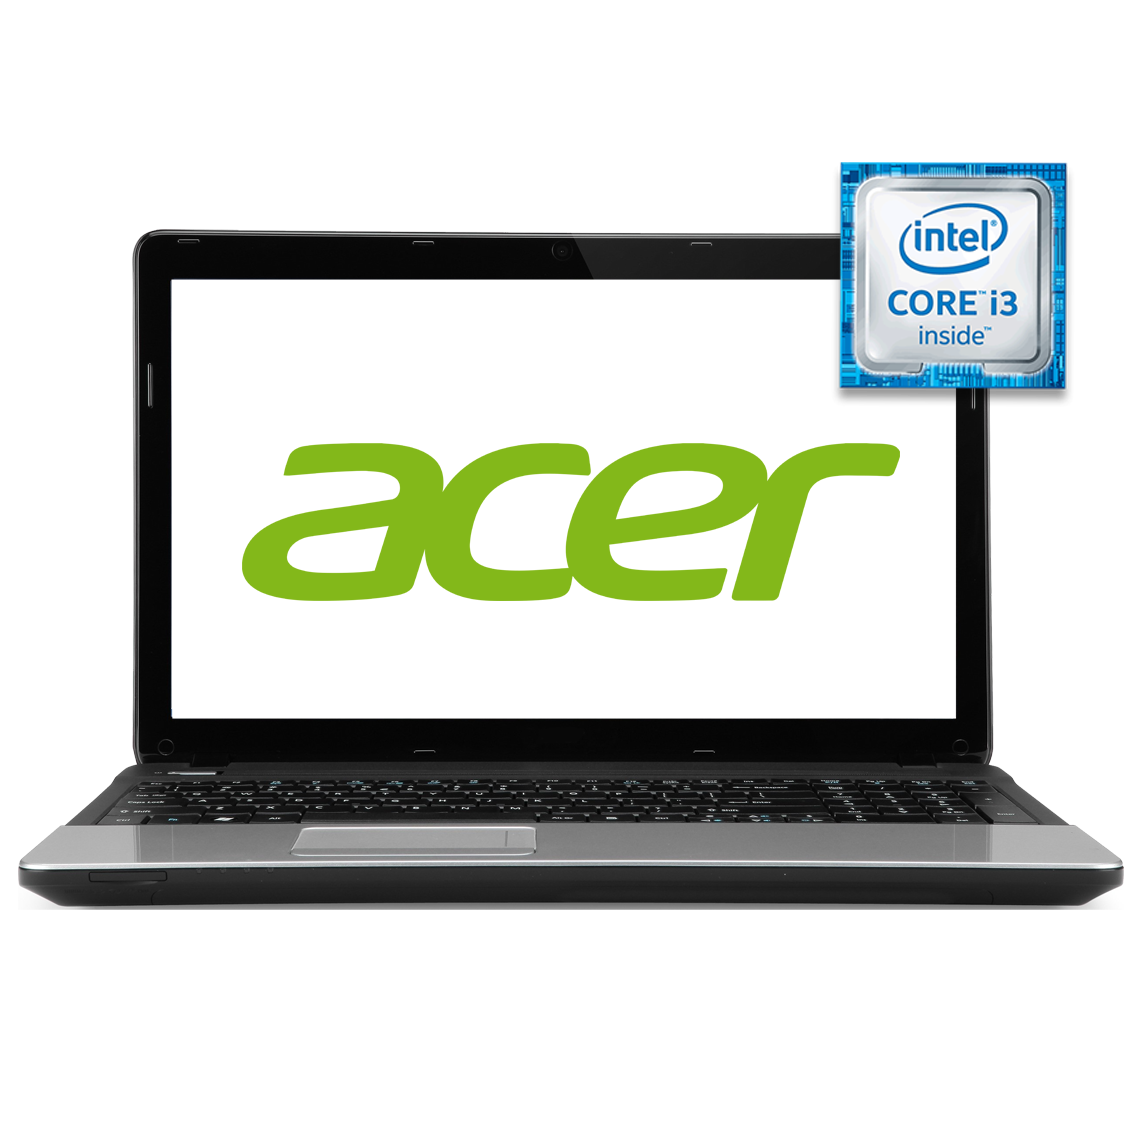 Acer - 15.6 inch Core i3 2nd Gen